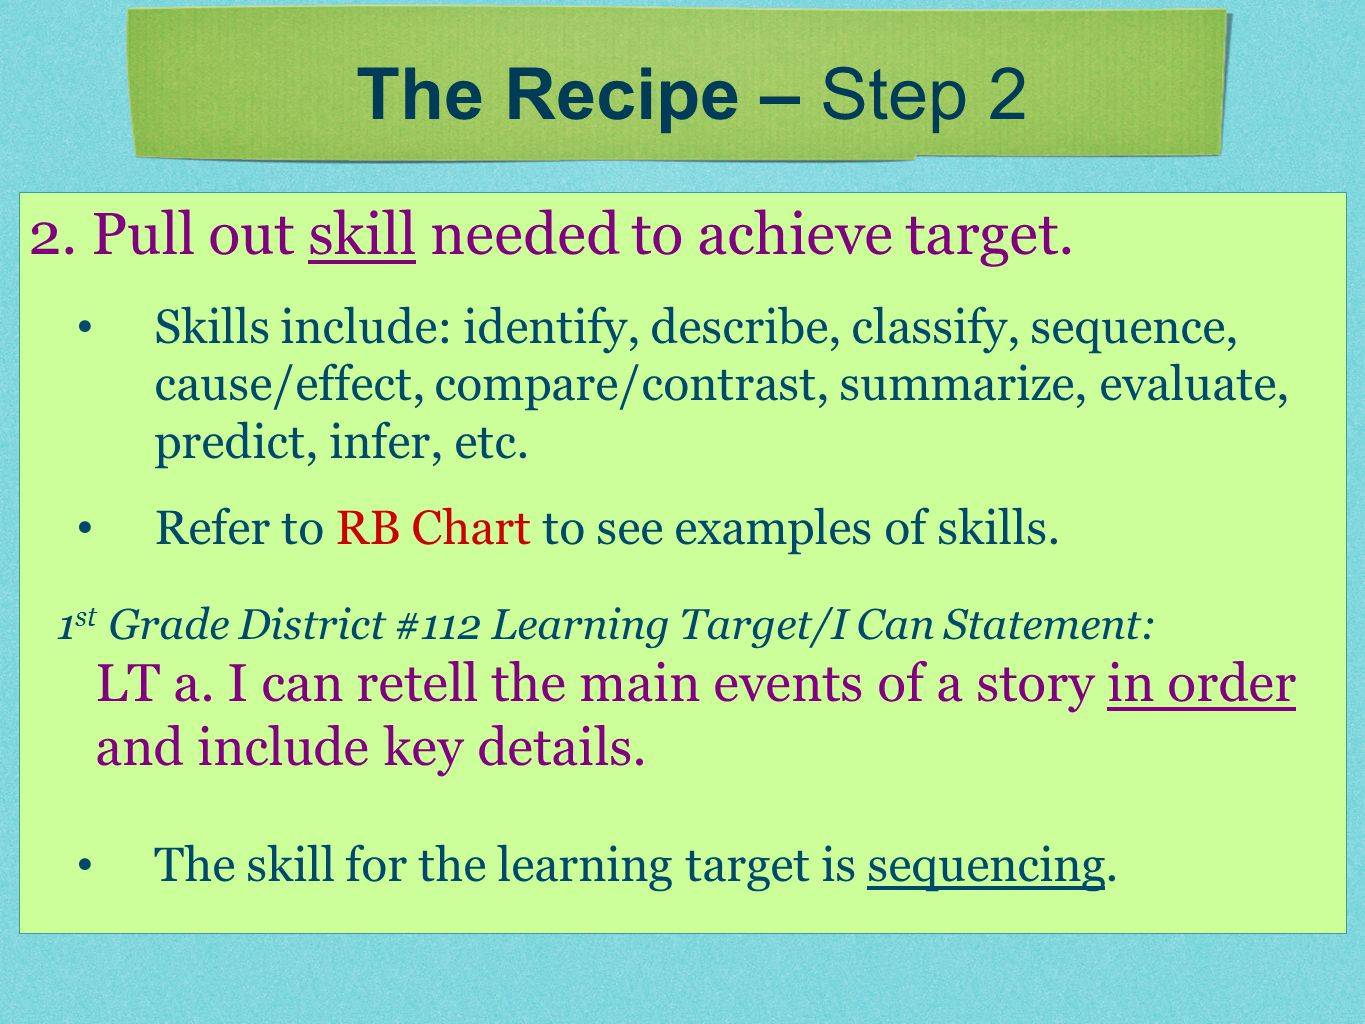 2. Pull out skill needed to achieve target.